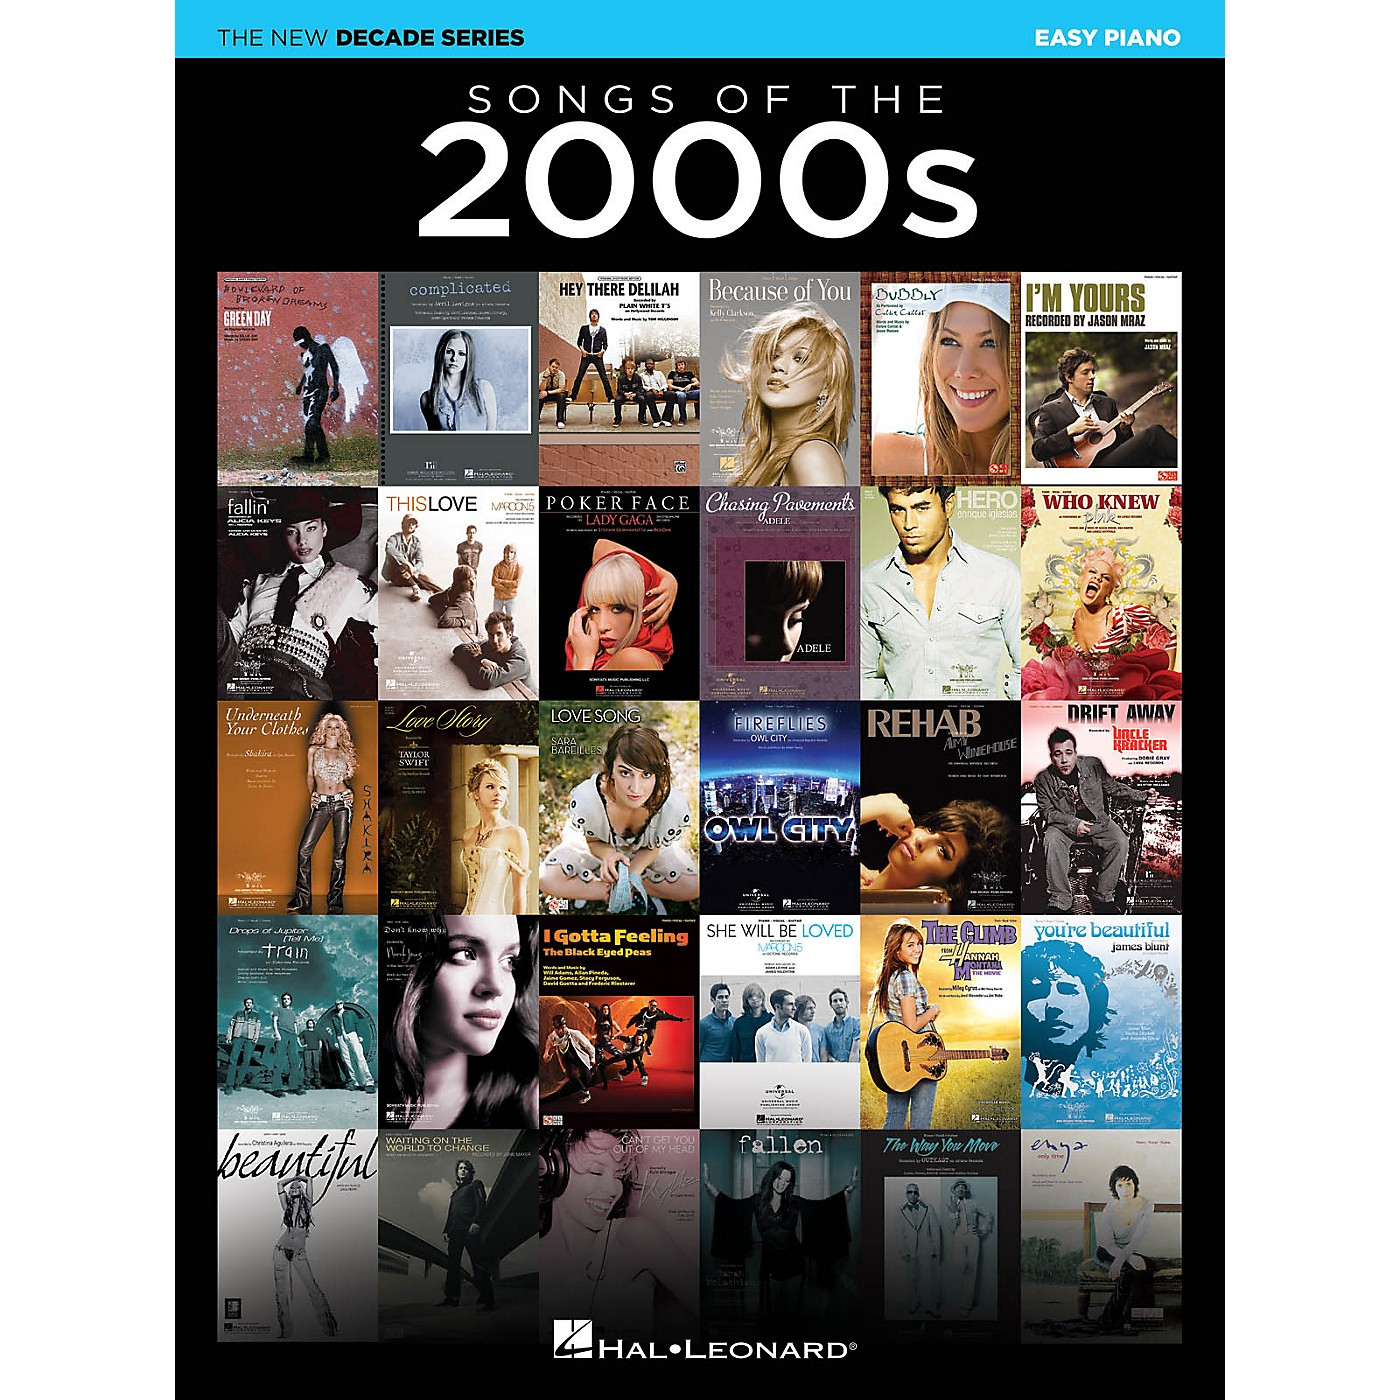 Hal Leonard Songs of the 2000s (The New Decade Series) Easy Piano Songbook thumbnail